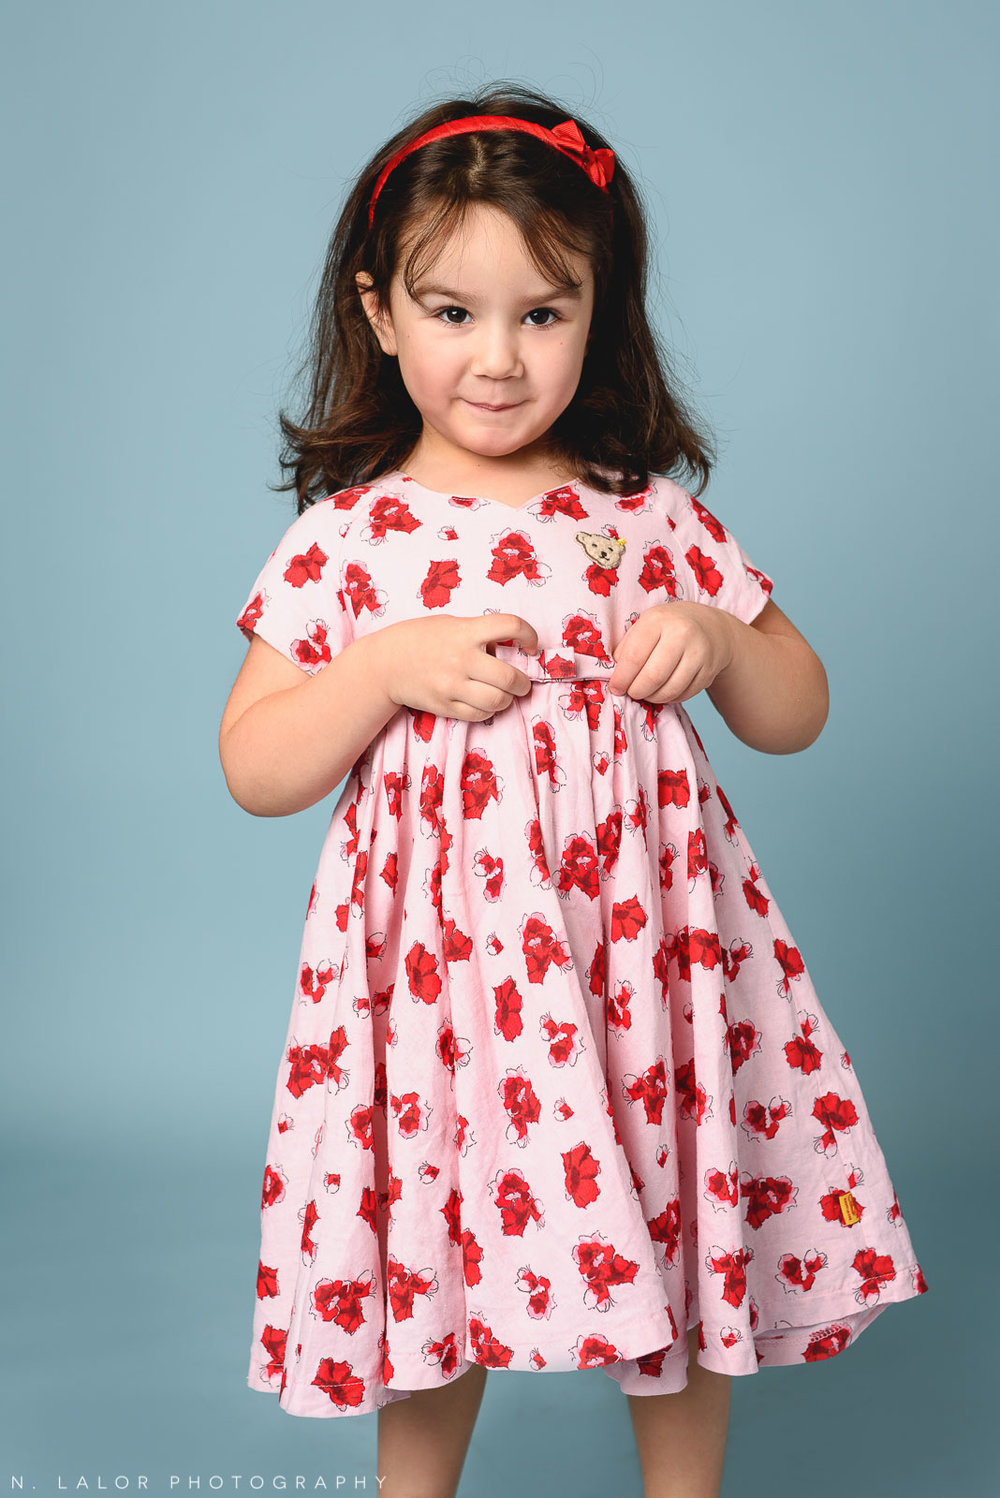 Pink hearts dress. Kids fashion portrait by N. Lalor Photography. New Canaan, Connecticut.